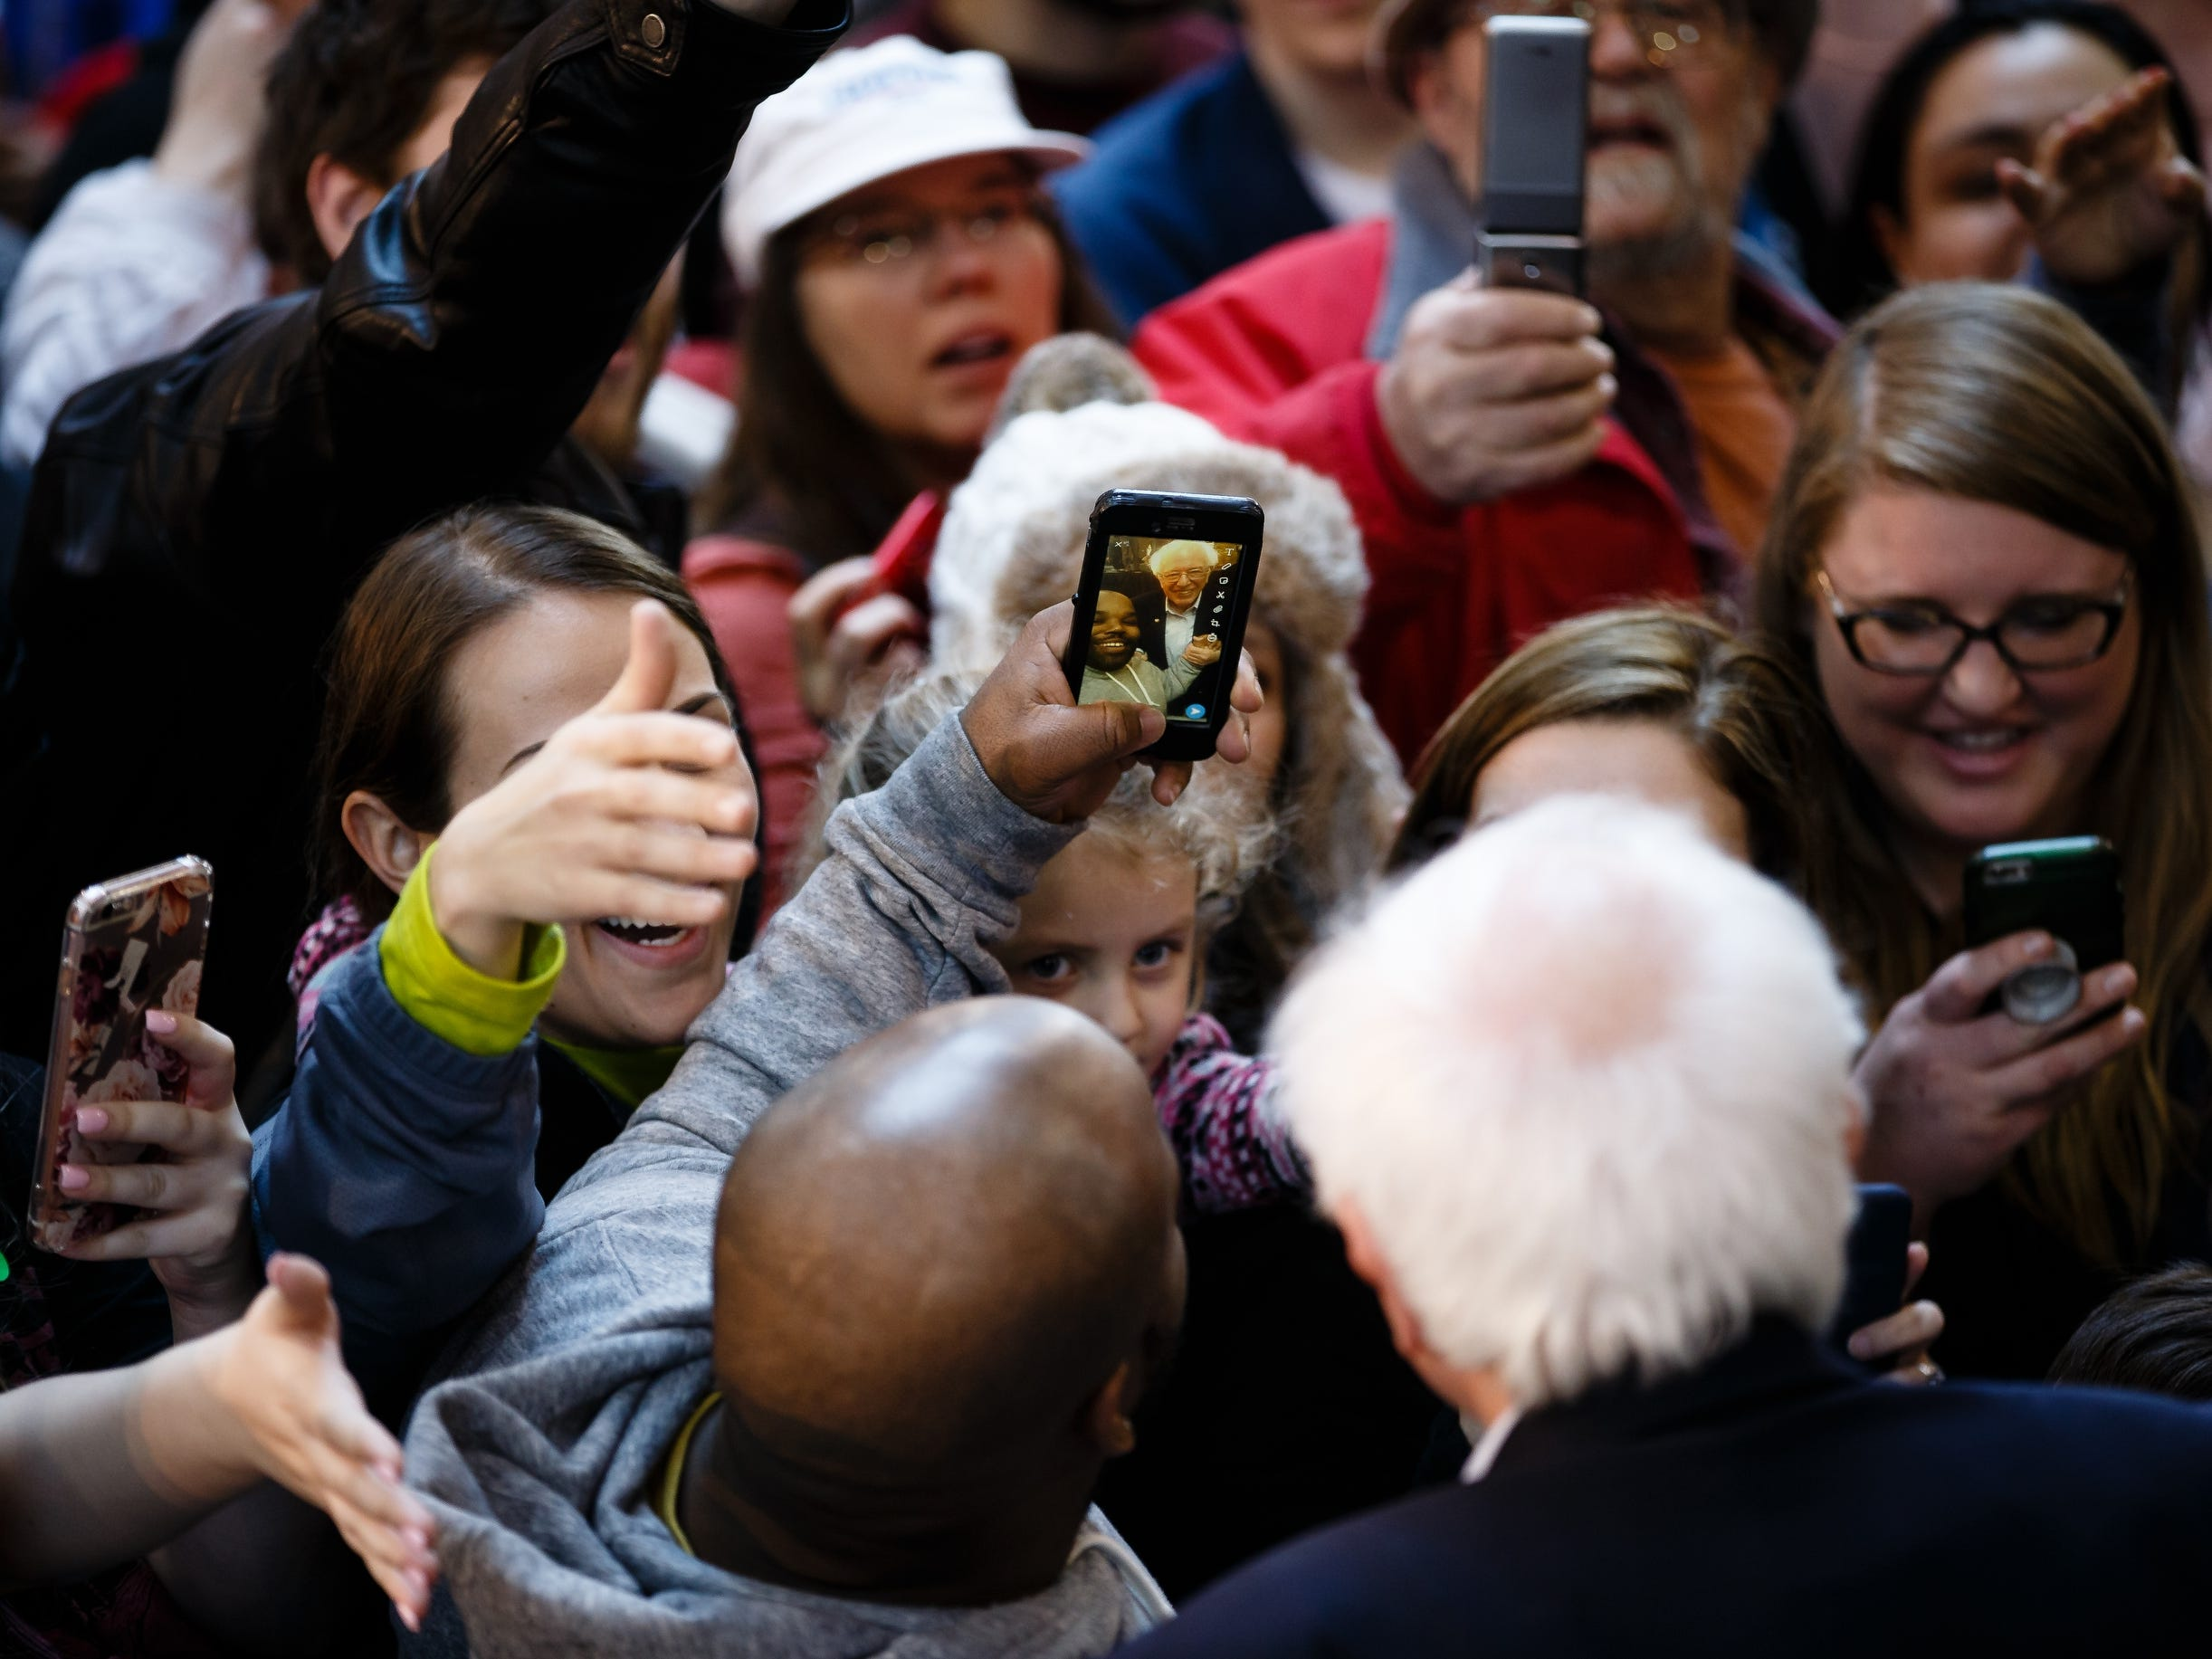 People take a selfie with democratic presidential candidate Bernie Sanders during a rally at the Iowa State Fairgrounds on Saturday, March 9, 2019 in Des Moines.